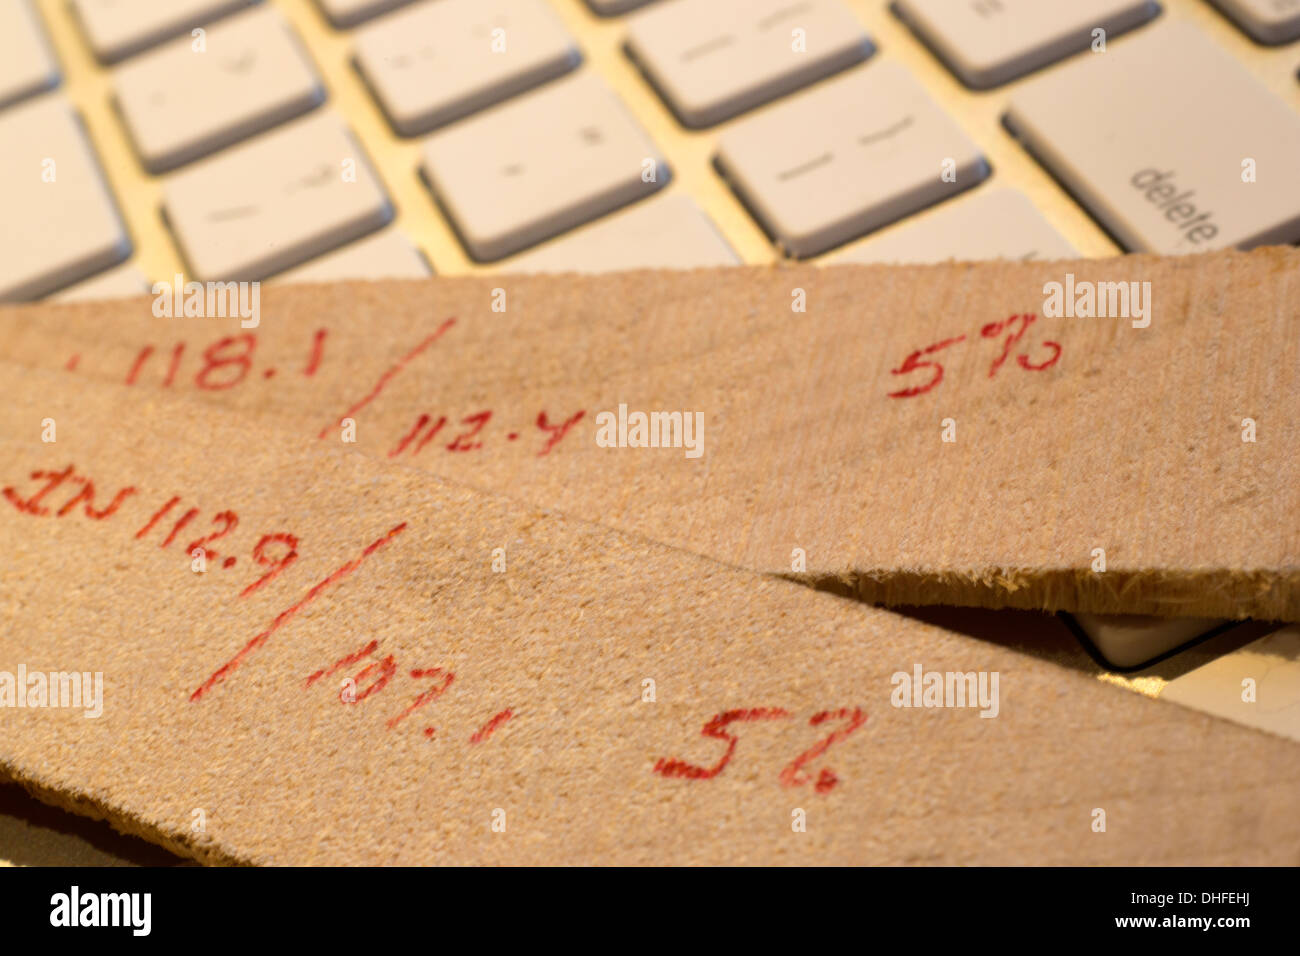 LUMBER HUMIDITY MOISTURE REDUCTION CALCULATIONS OF KILN TIMBER SLICES LAYING ON COMPUTER KEYBOARD - Stock Image